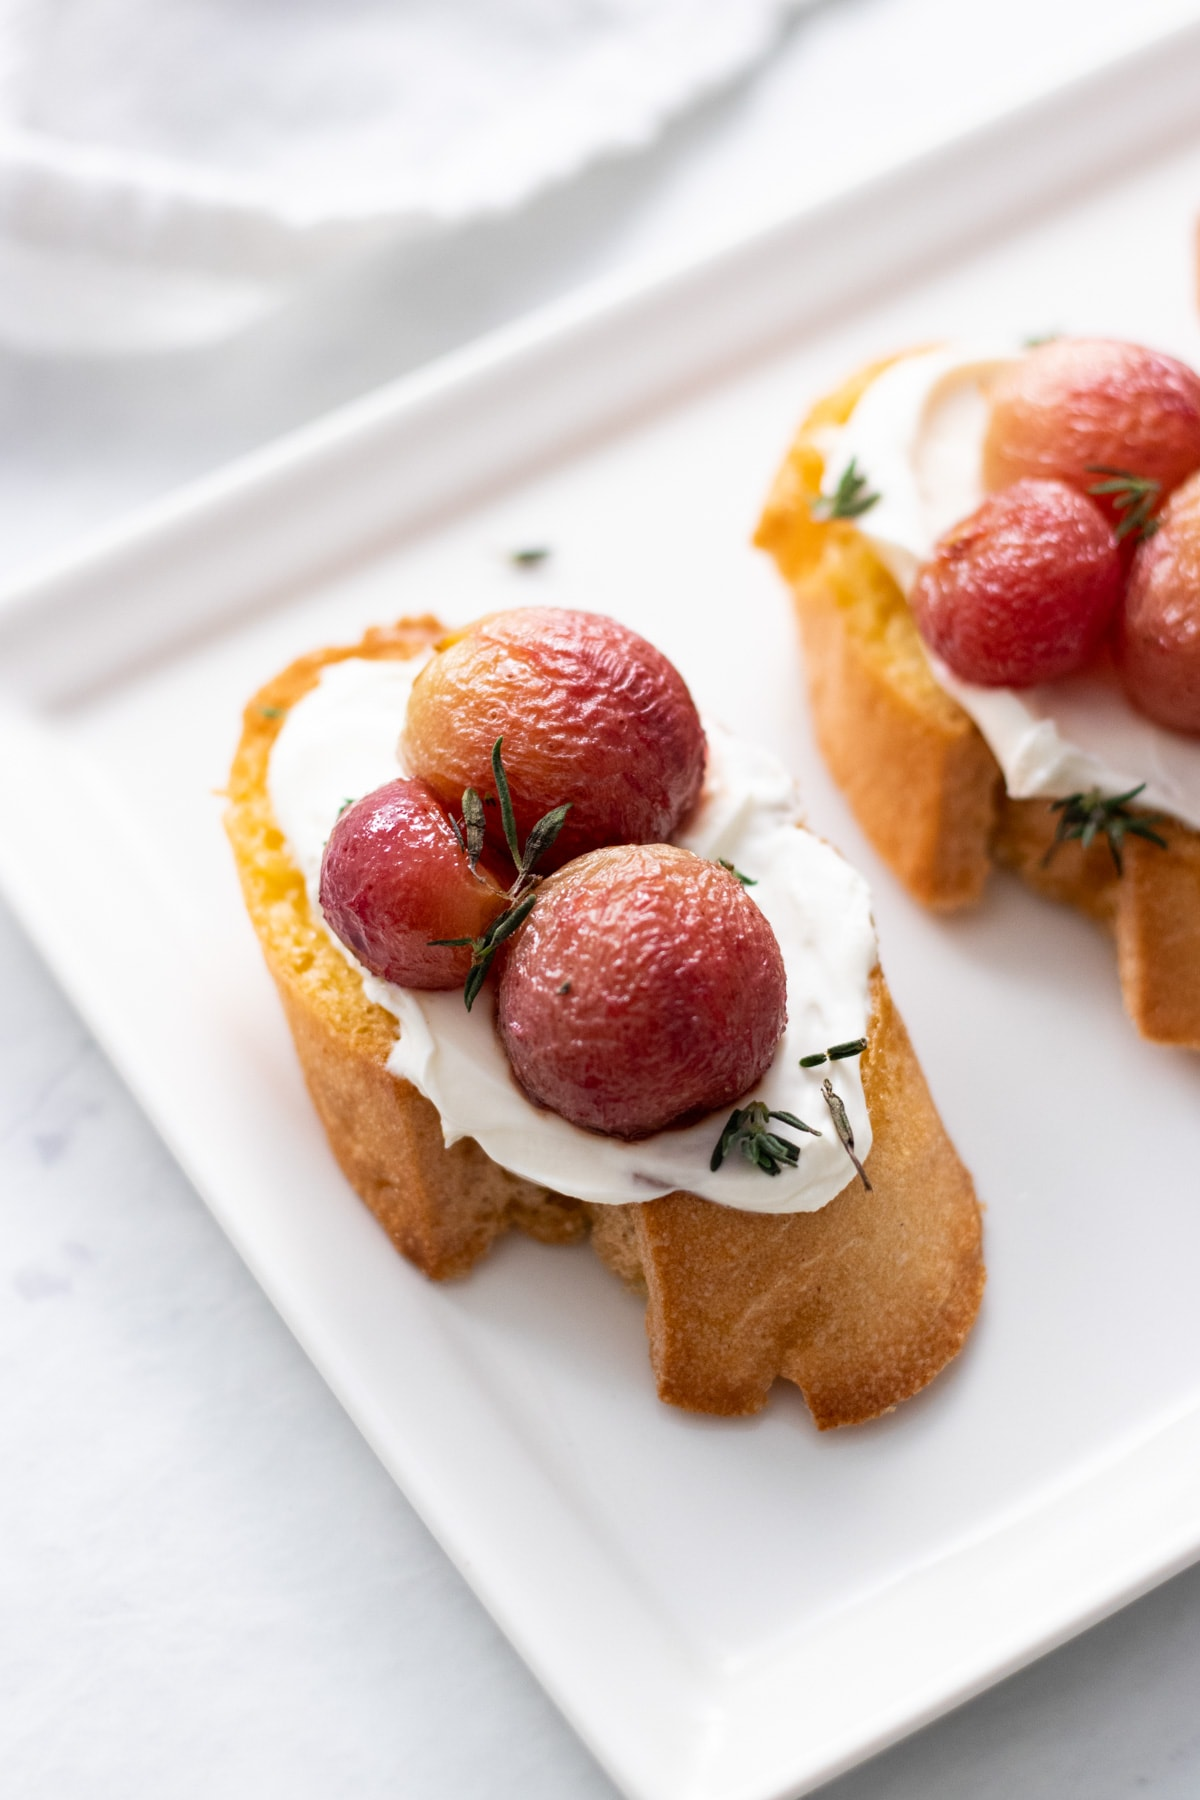 A crostini spread with lactose-free cream cheese and topped with roasted grapes and fresh thyme.